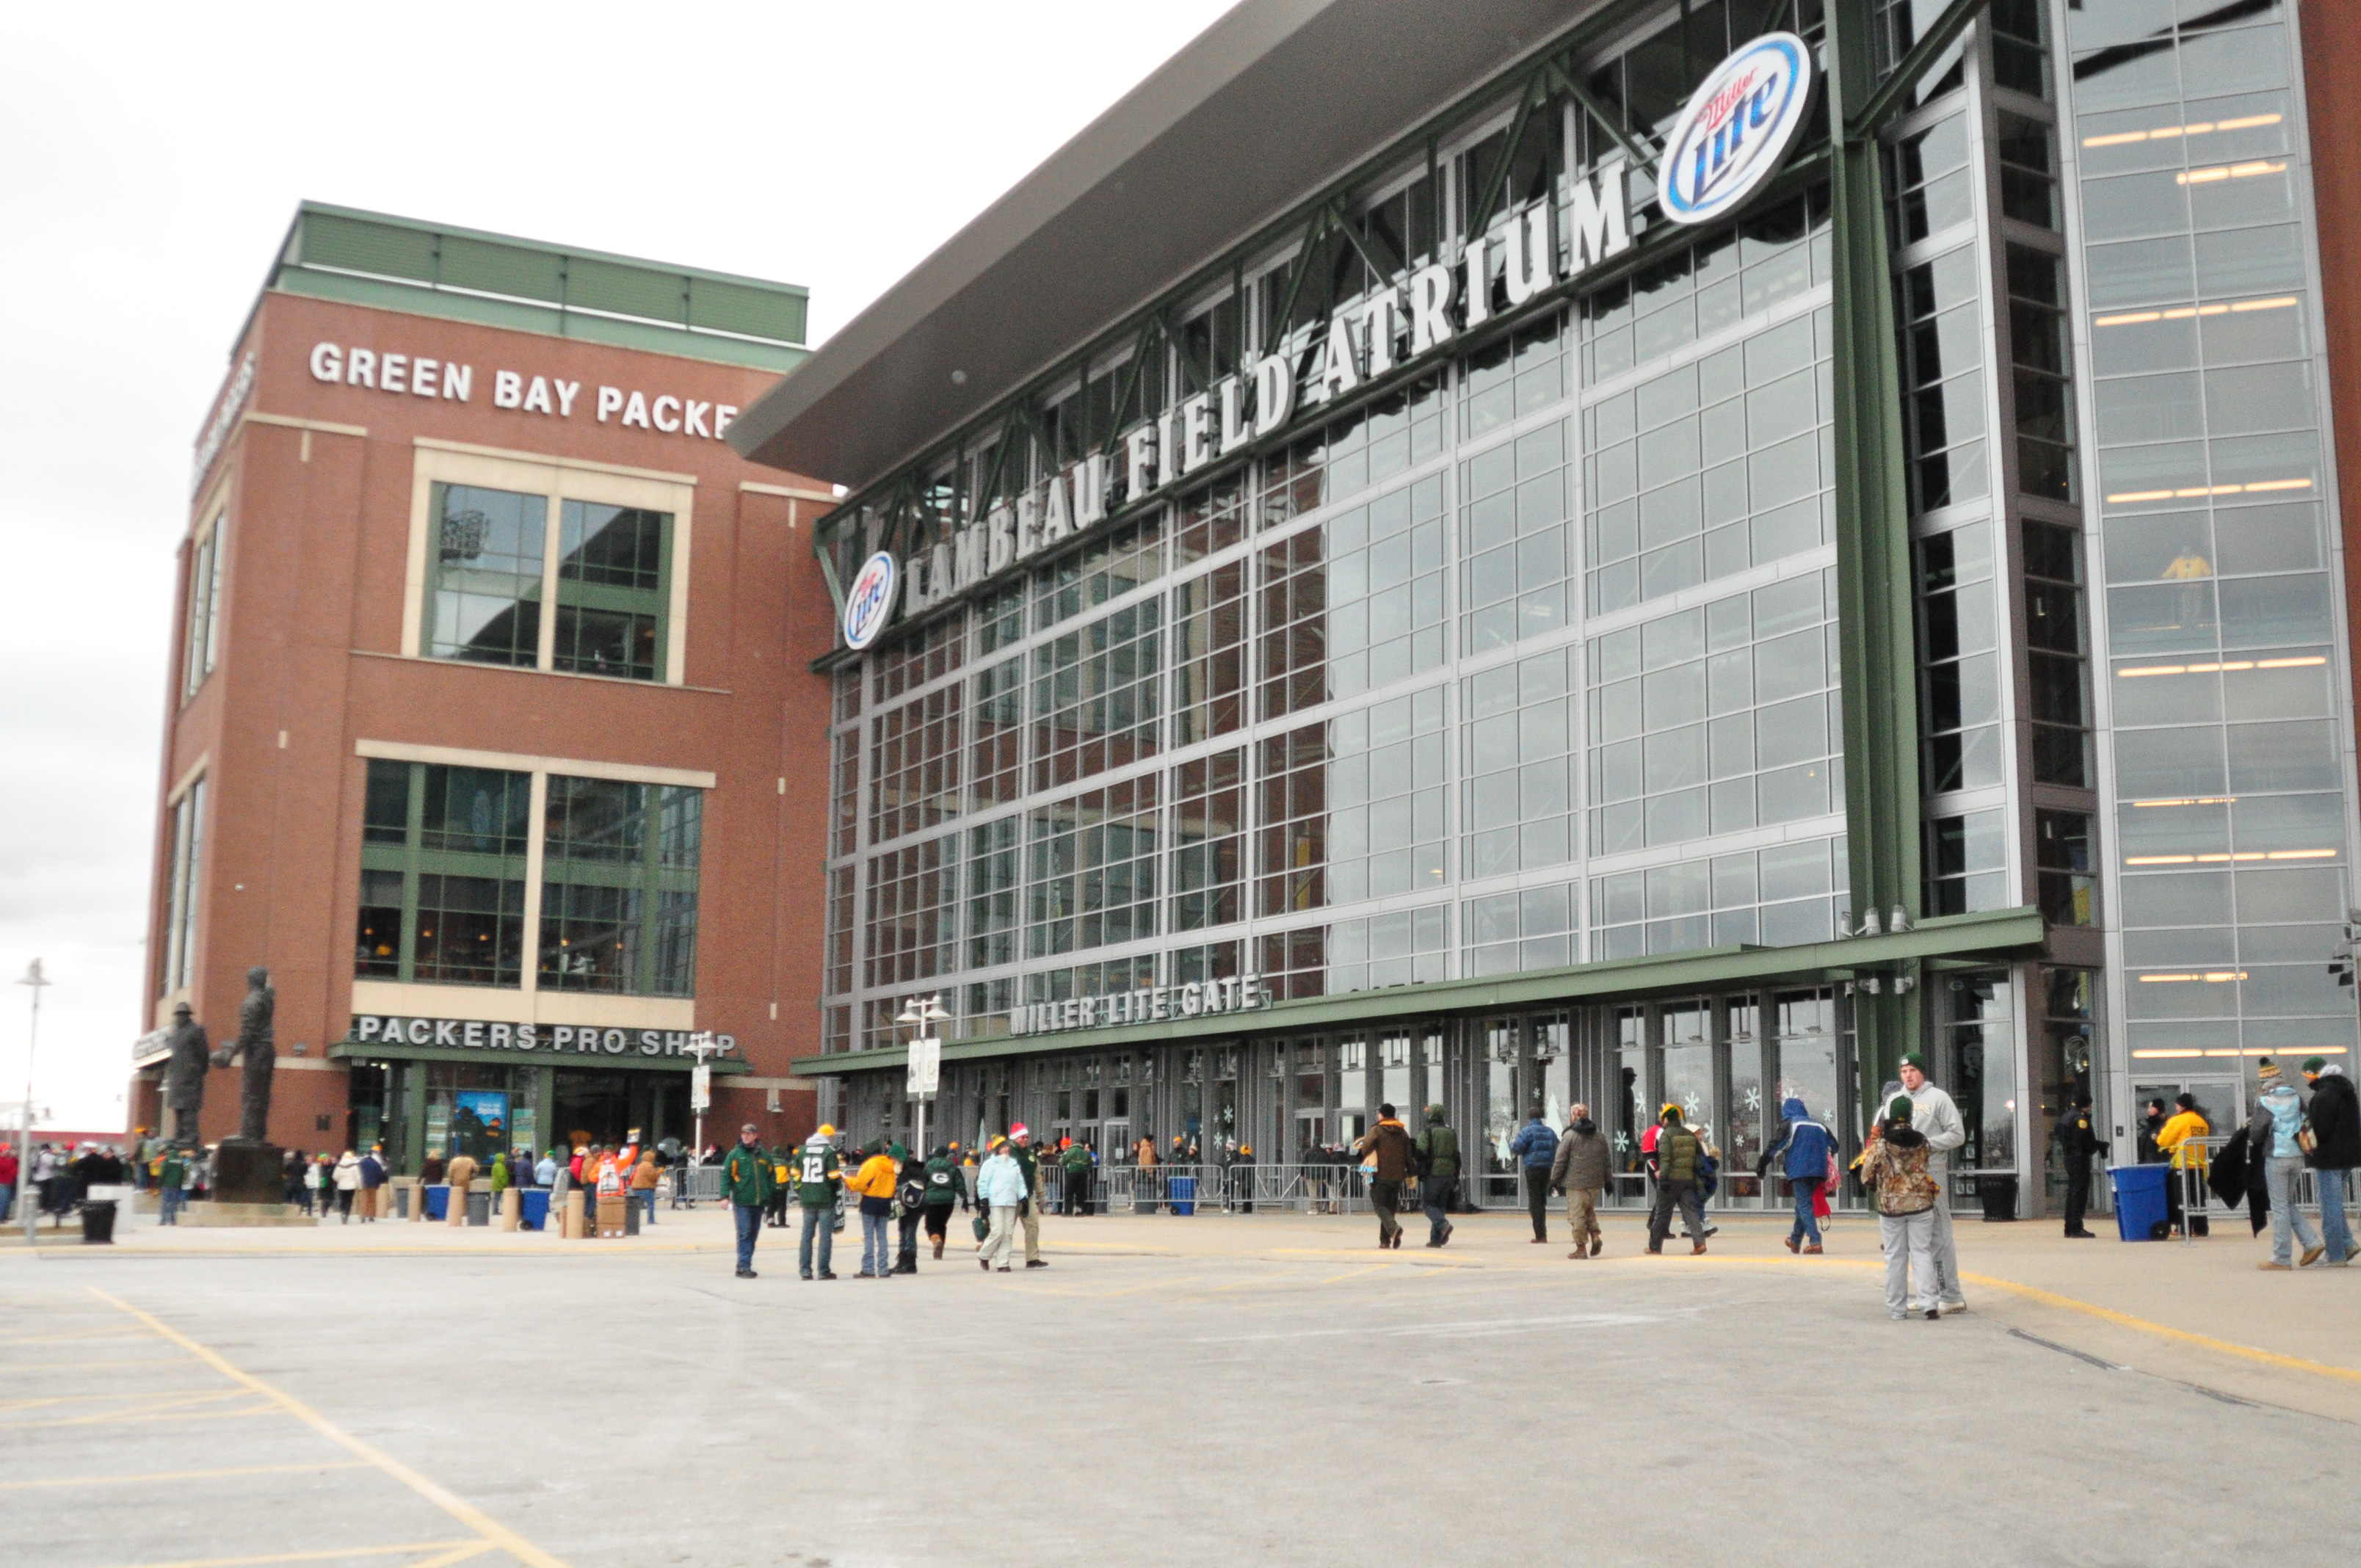 Tickets are available to Sunday's Packers game at the lowest prices since 2009. If you've never been to Lambeau, this might be the time to do it. Raymond T. Rivard photograph